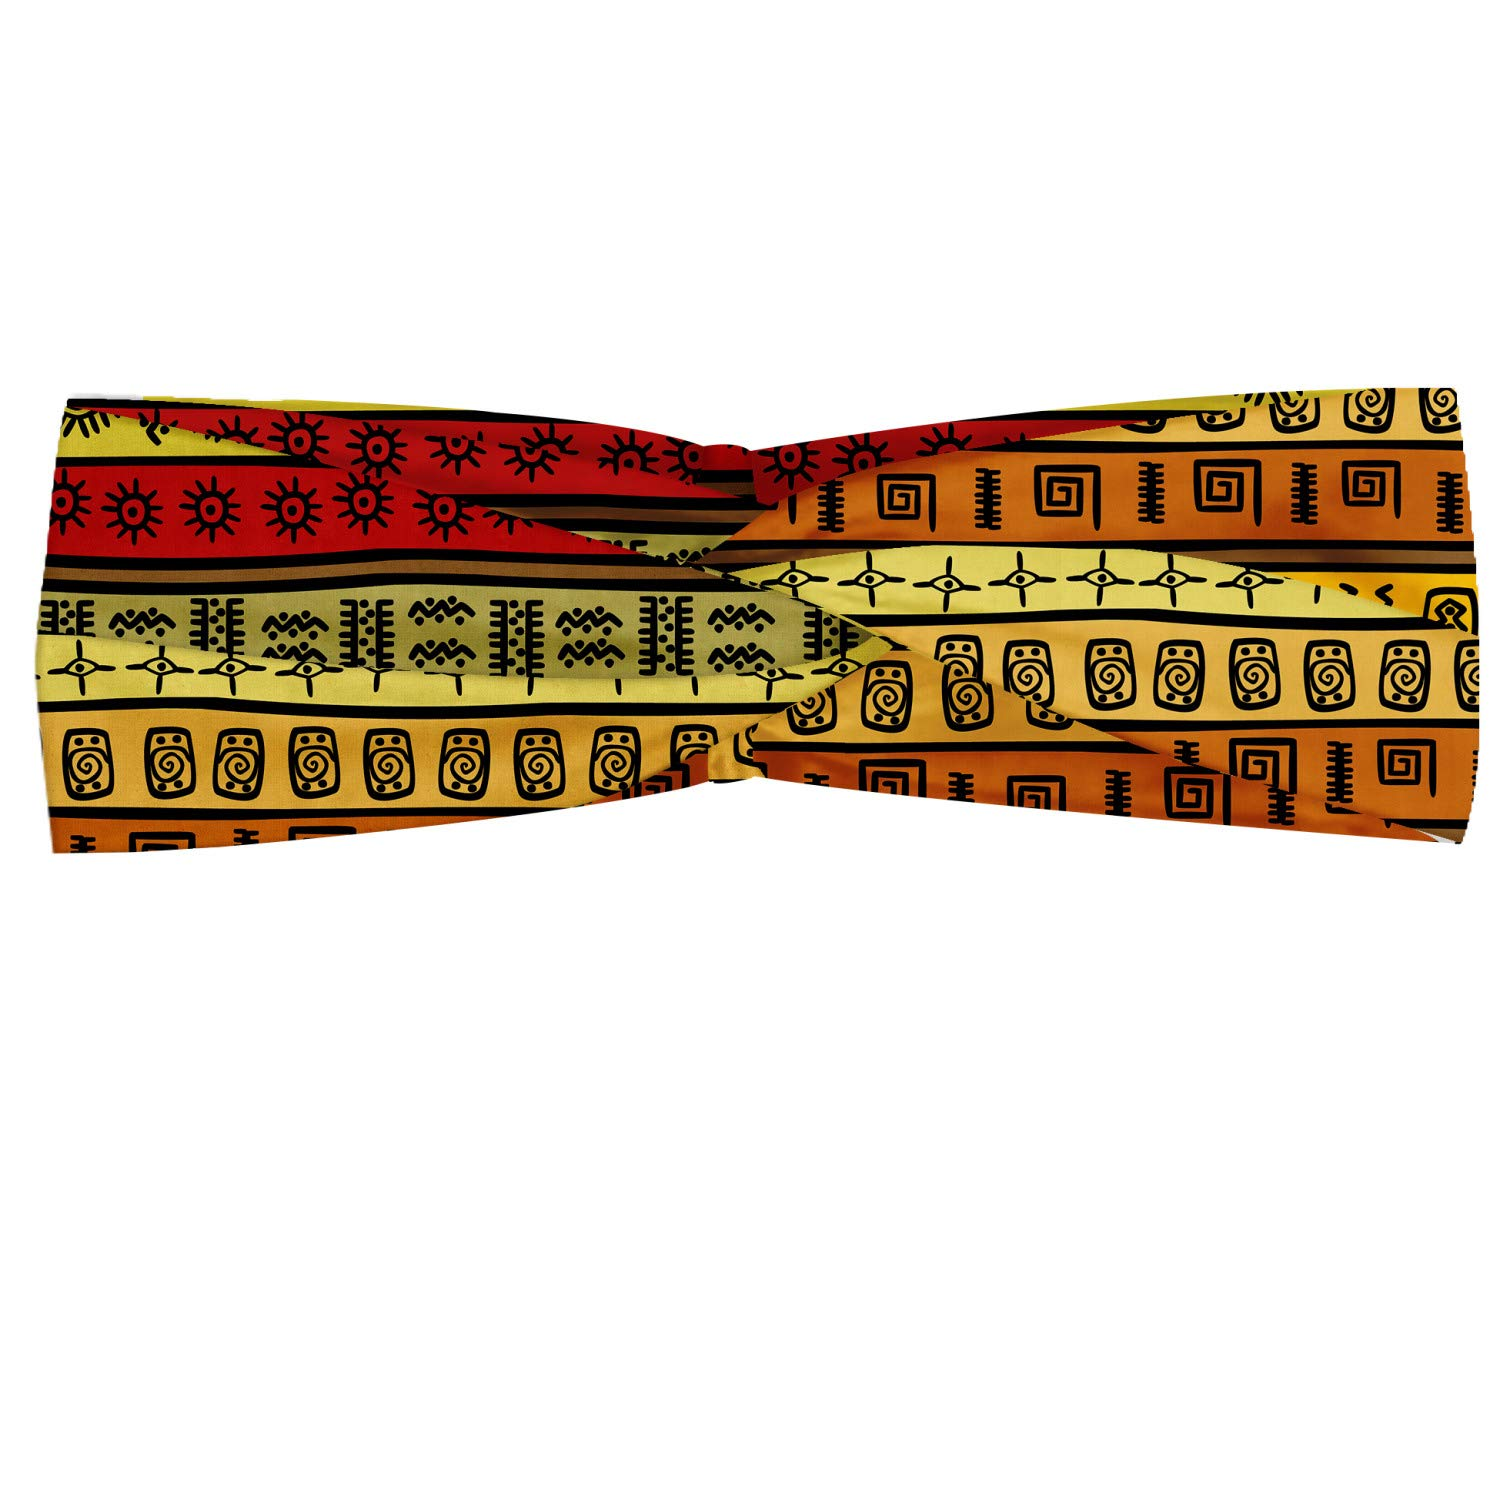 Ambesonne African Headband, Hand Drawn Pattern Abstract Geometric Striped Illustration, Elastic and Soft Women's Bandana for Sports and Everyday Use, Multicolor